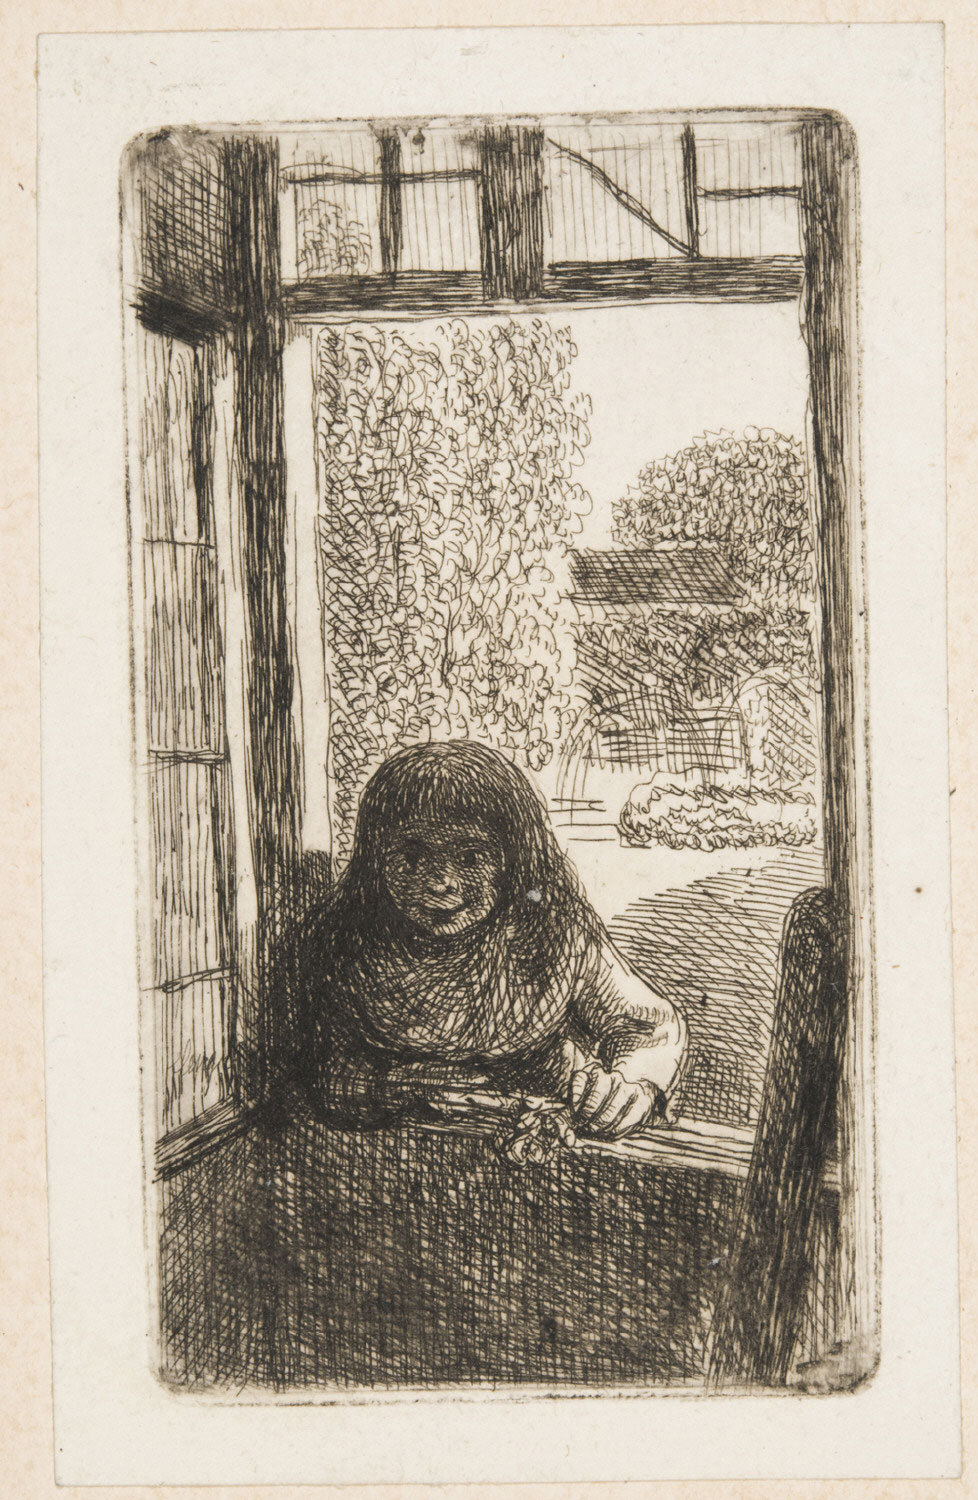 Boy (or Girl?) Holding a Flower, Leaning in from a Garden on a Window Sill